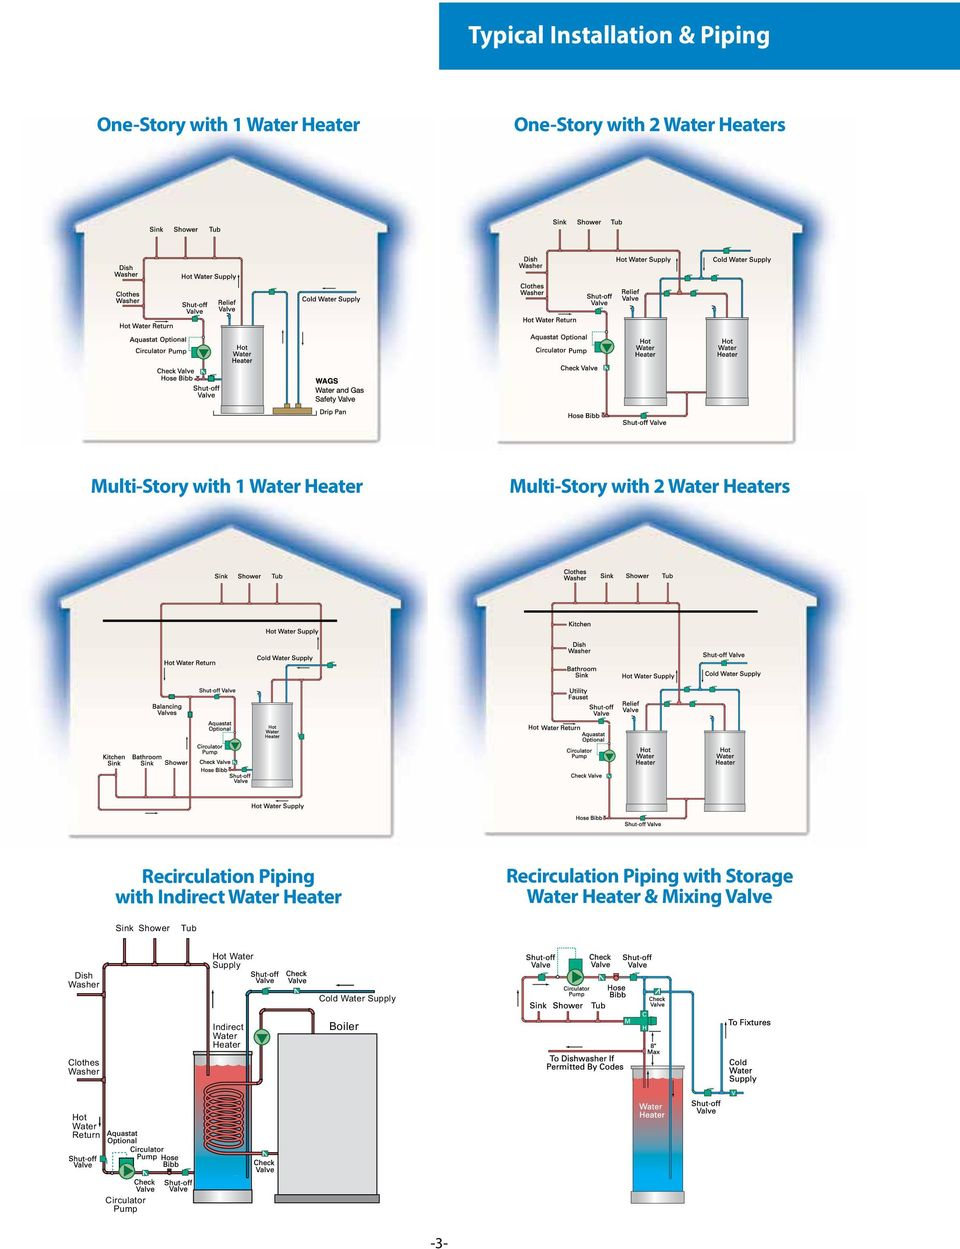 Piping Diagram Recirculating Hot Water Wiring Library House Recirculation With Storage Heater Mixing Valve Sink Shower Tub Dish Washer Clothes